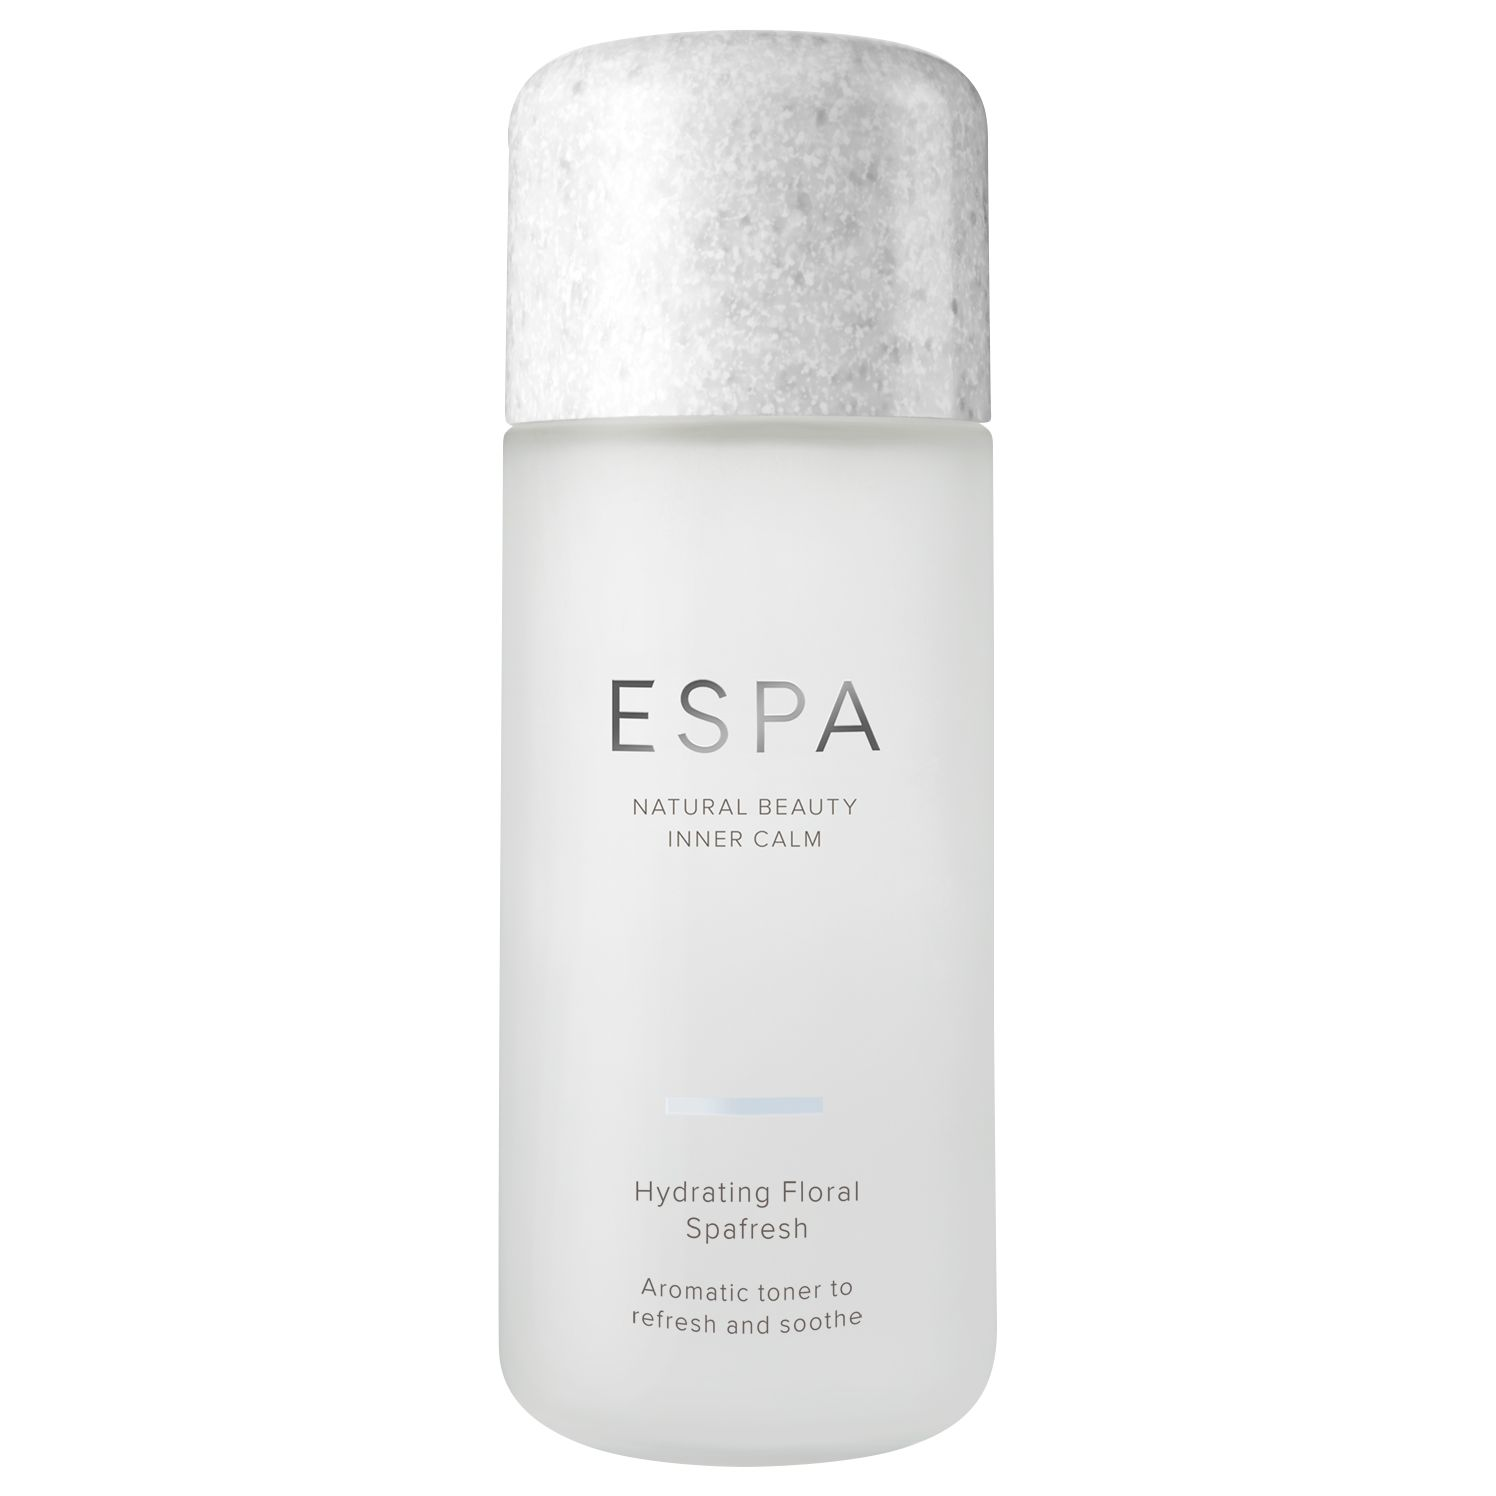 ESPA ESPA Hydrating Floral Spafresh Toner, 200ml